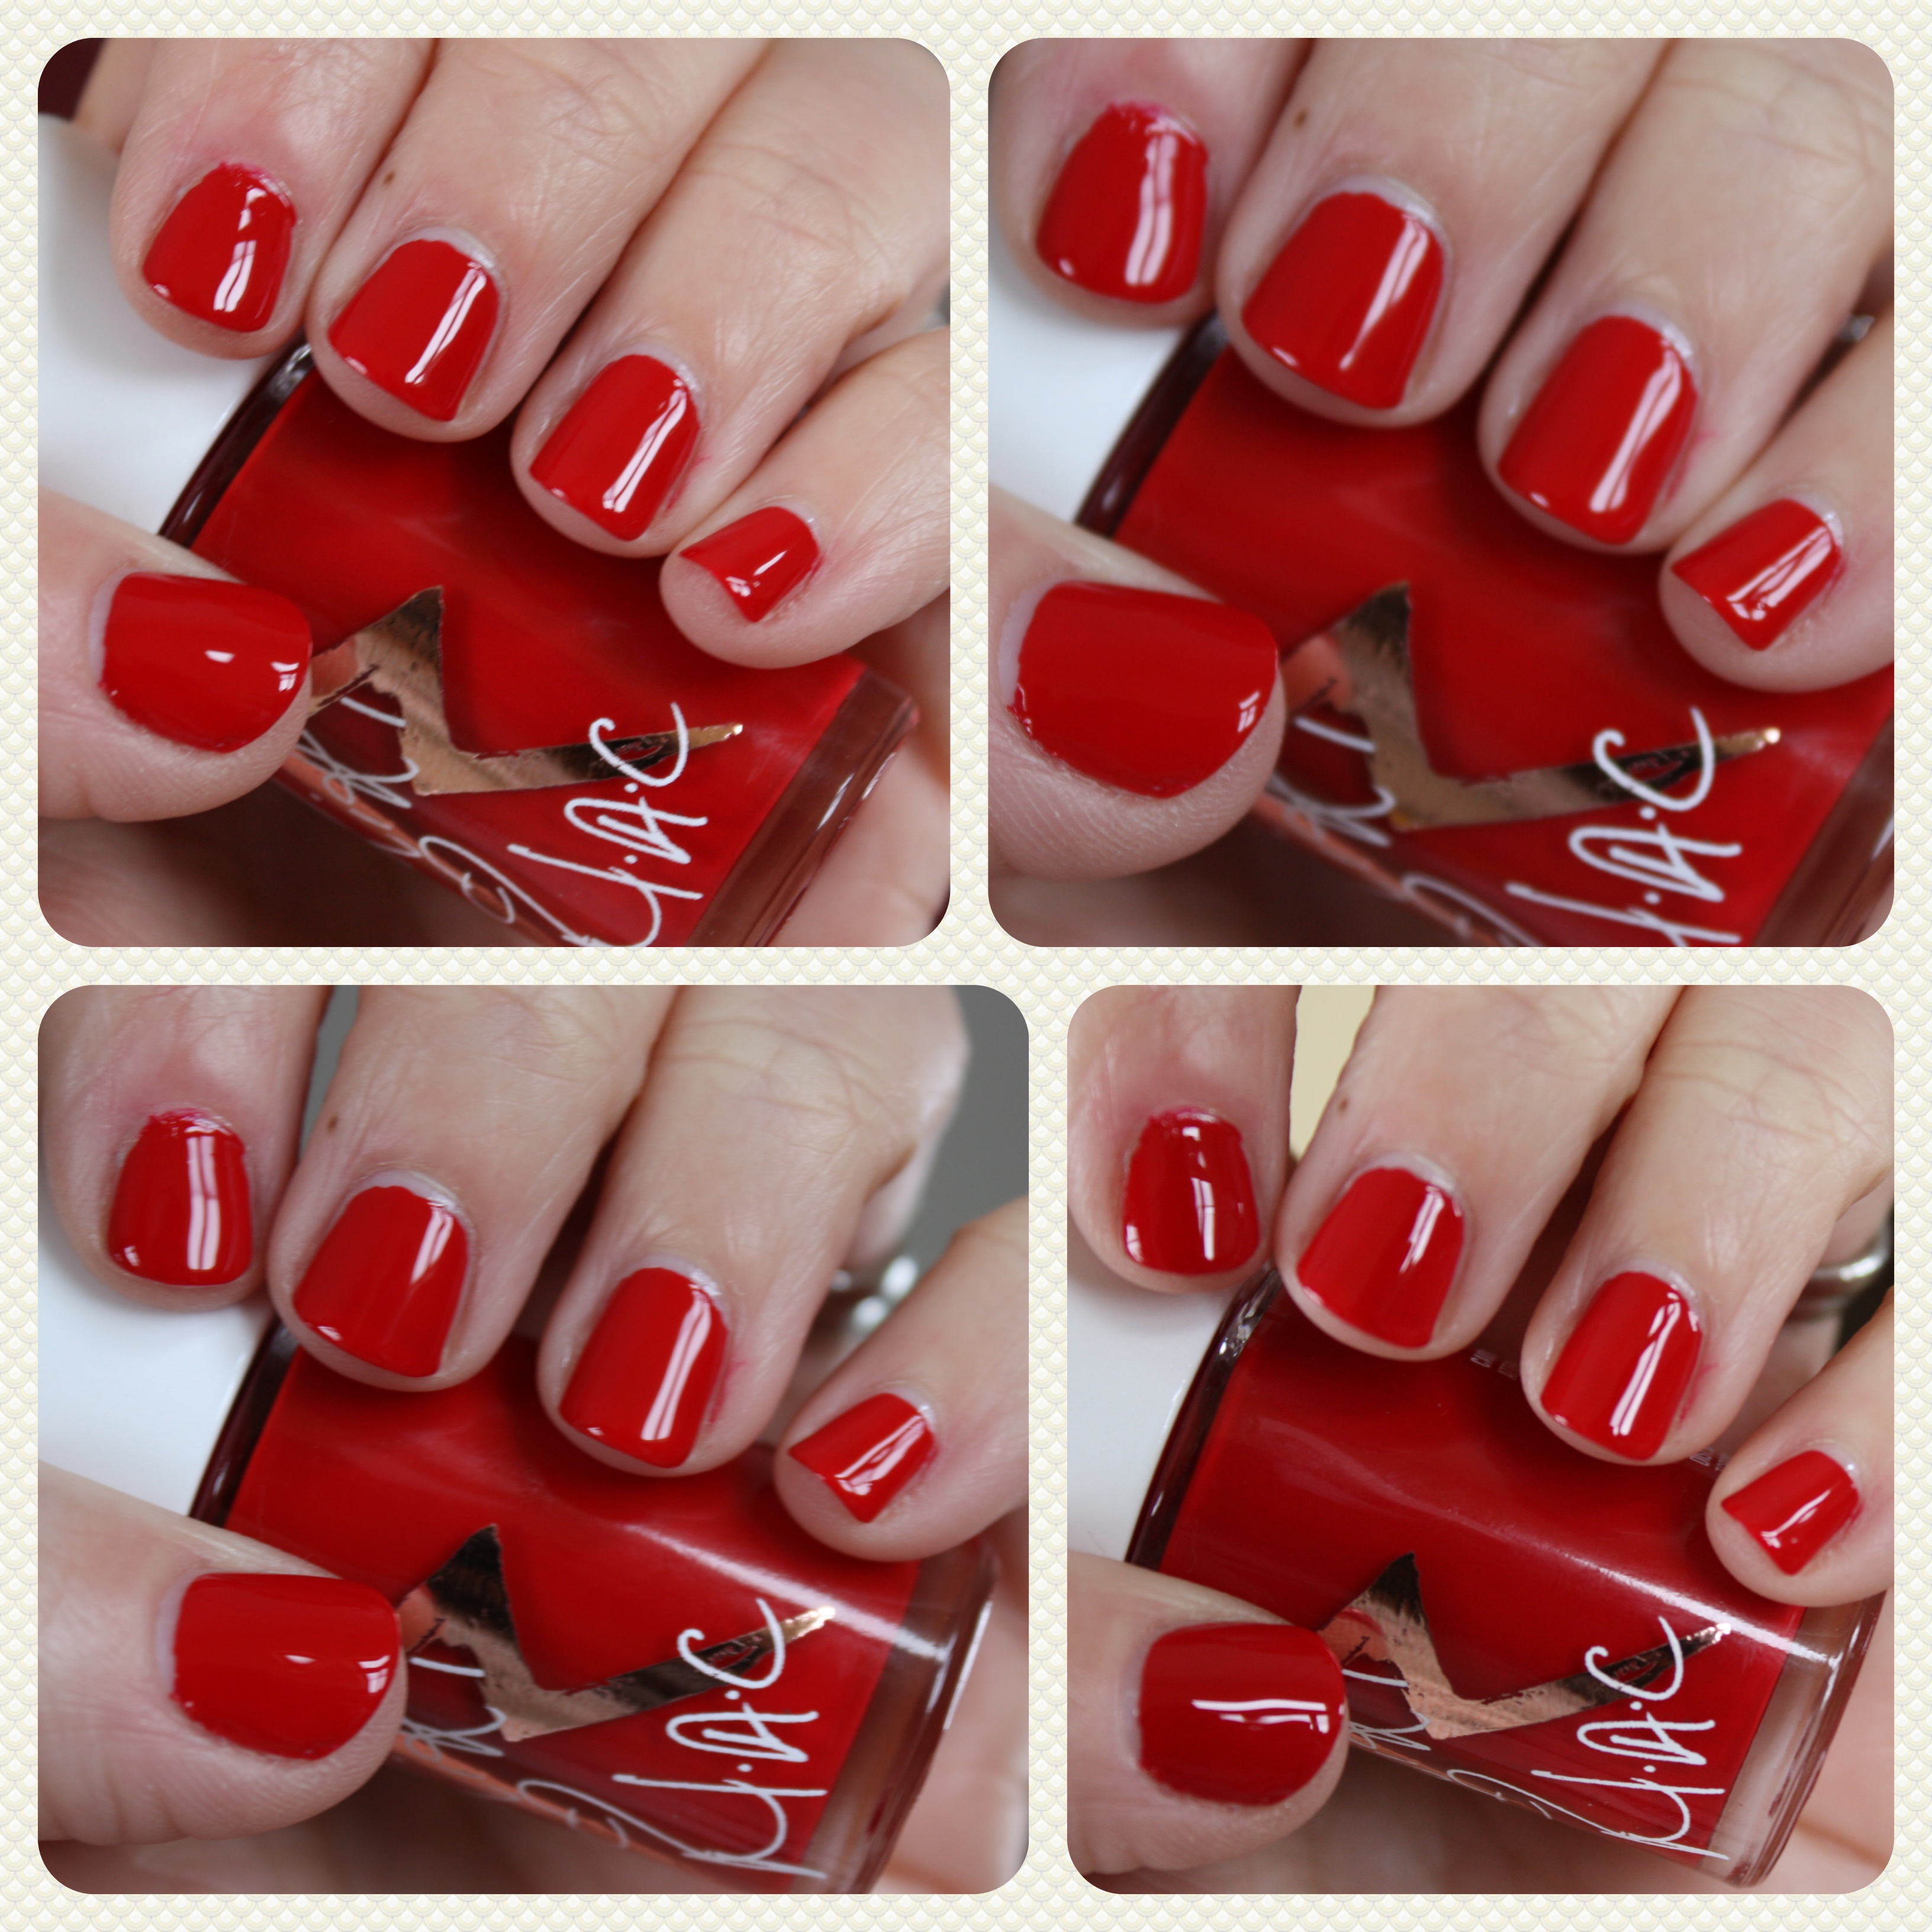 red nail polish – horrendous color